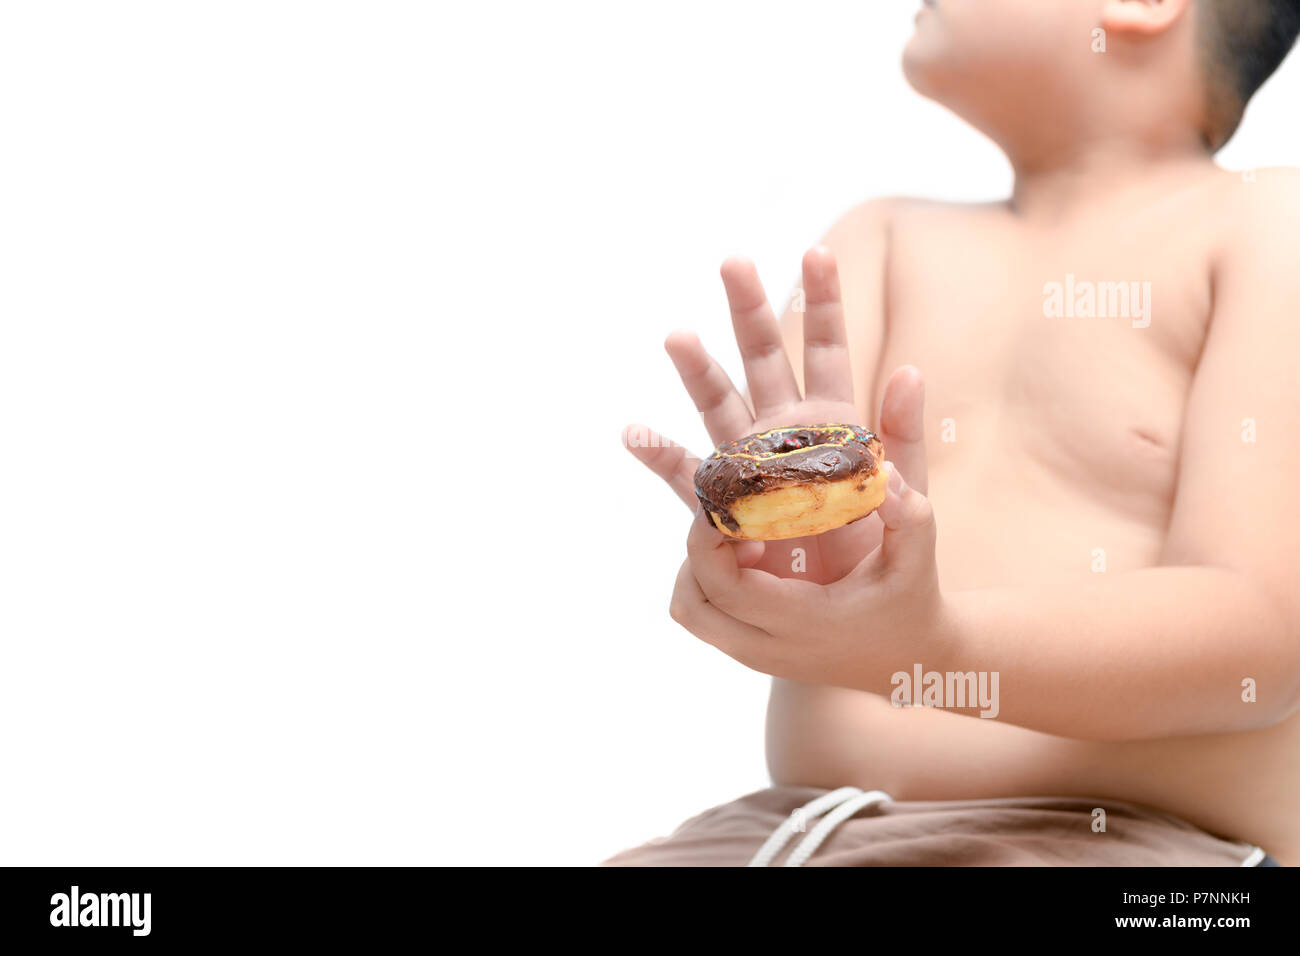 Obese fat boy refuses to eat donut isolated on white background - dieting concept - Stock Image